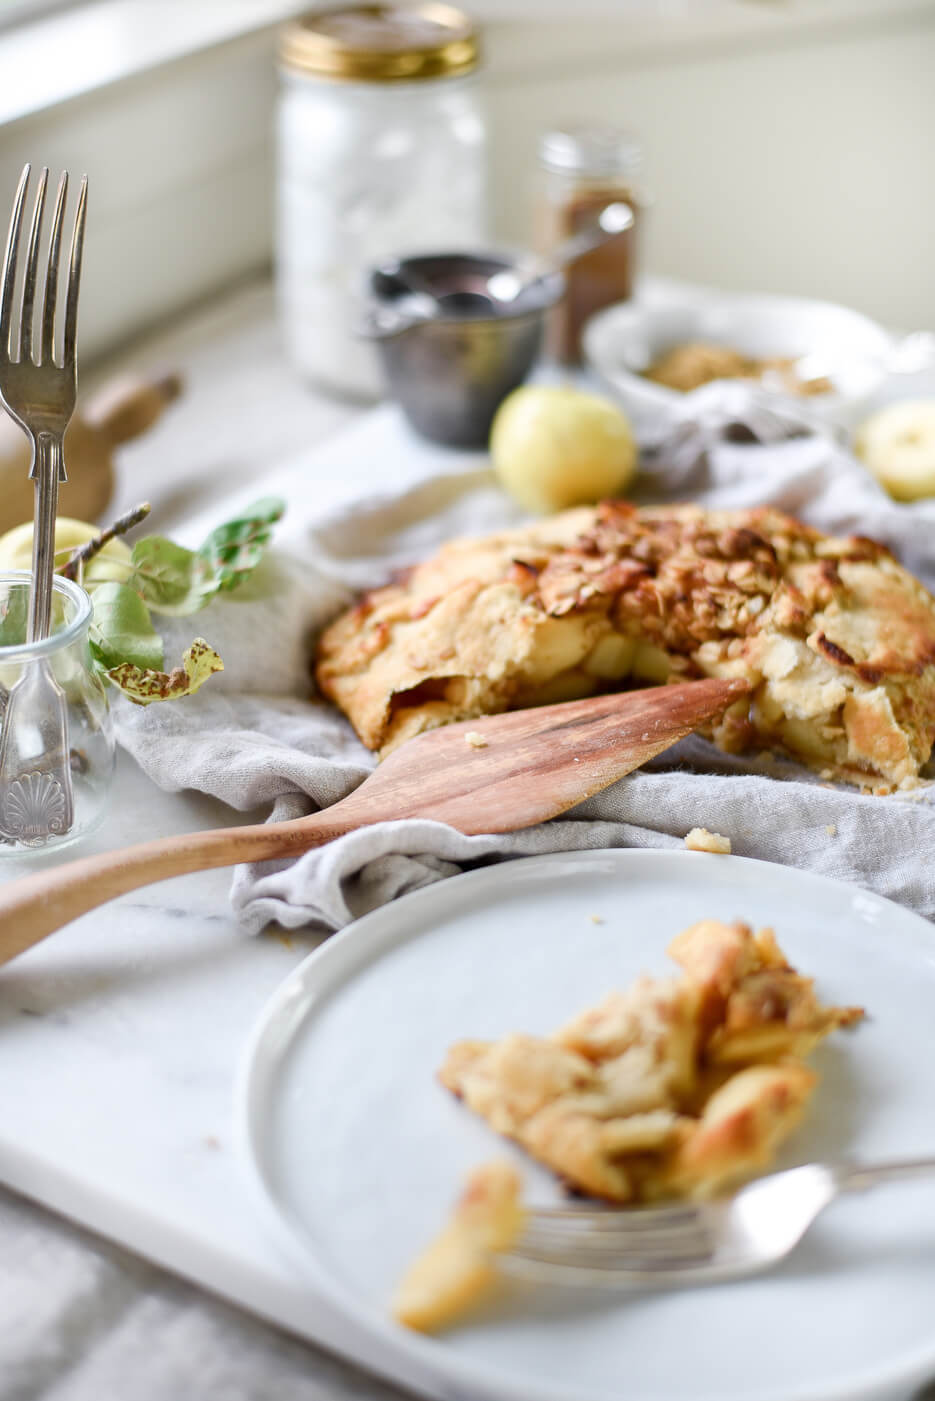 Rustic baking - an easy homemade apple pie galette from boxwoodavenue.com